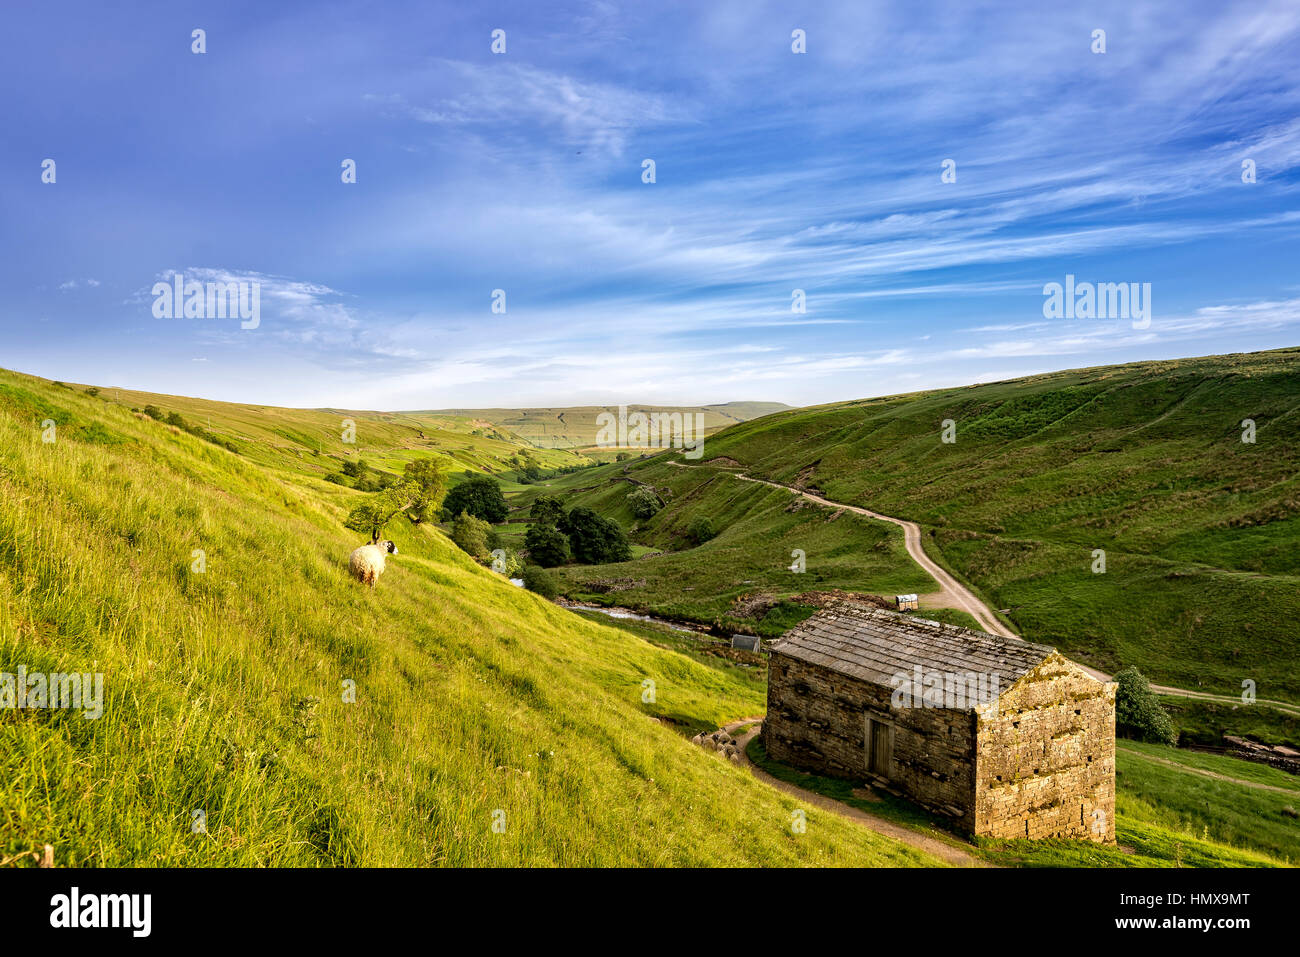 Evening sun up on the Pennines in the Yorkshire Dales - Stock Image